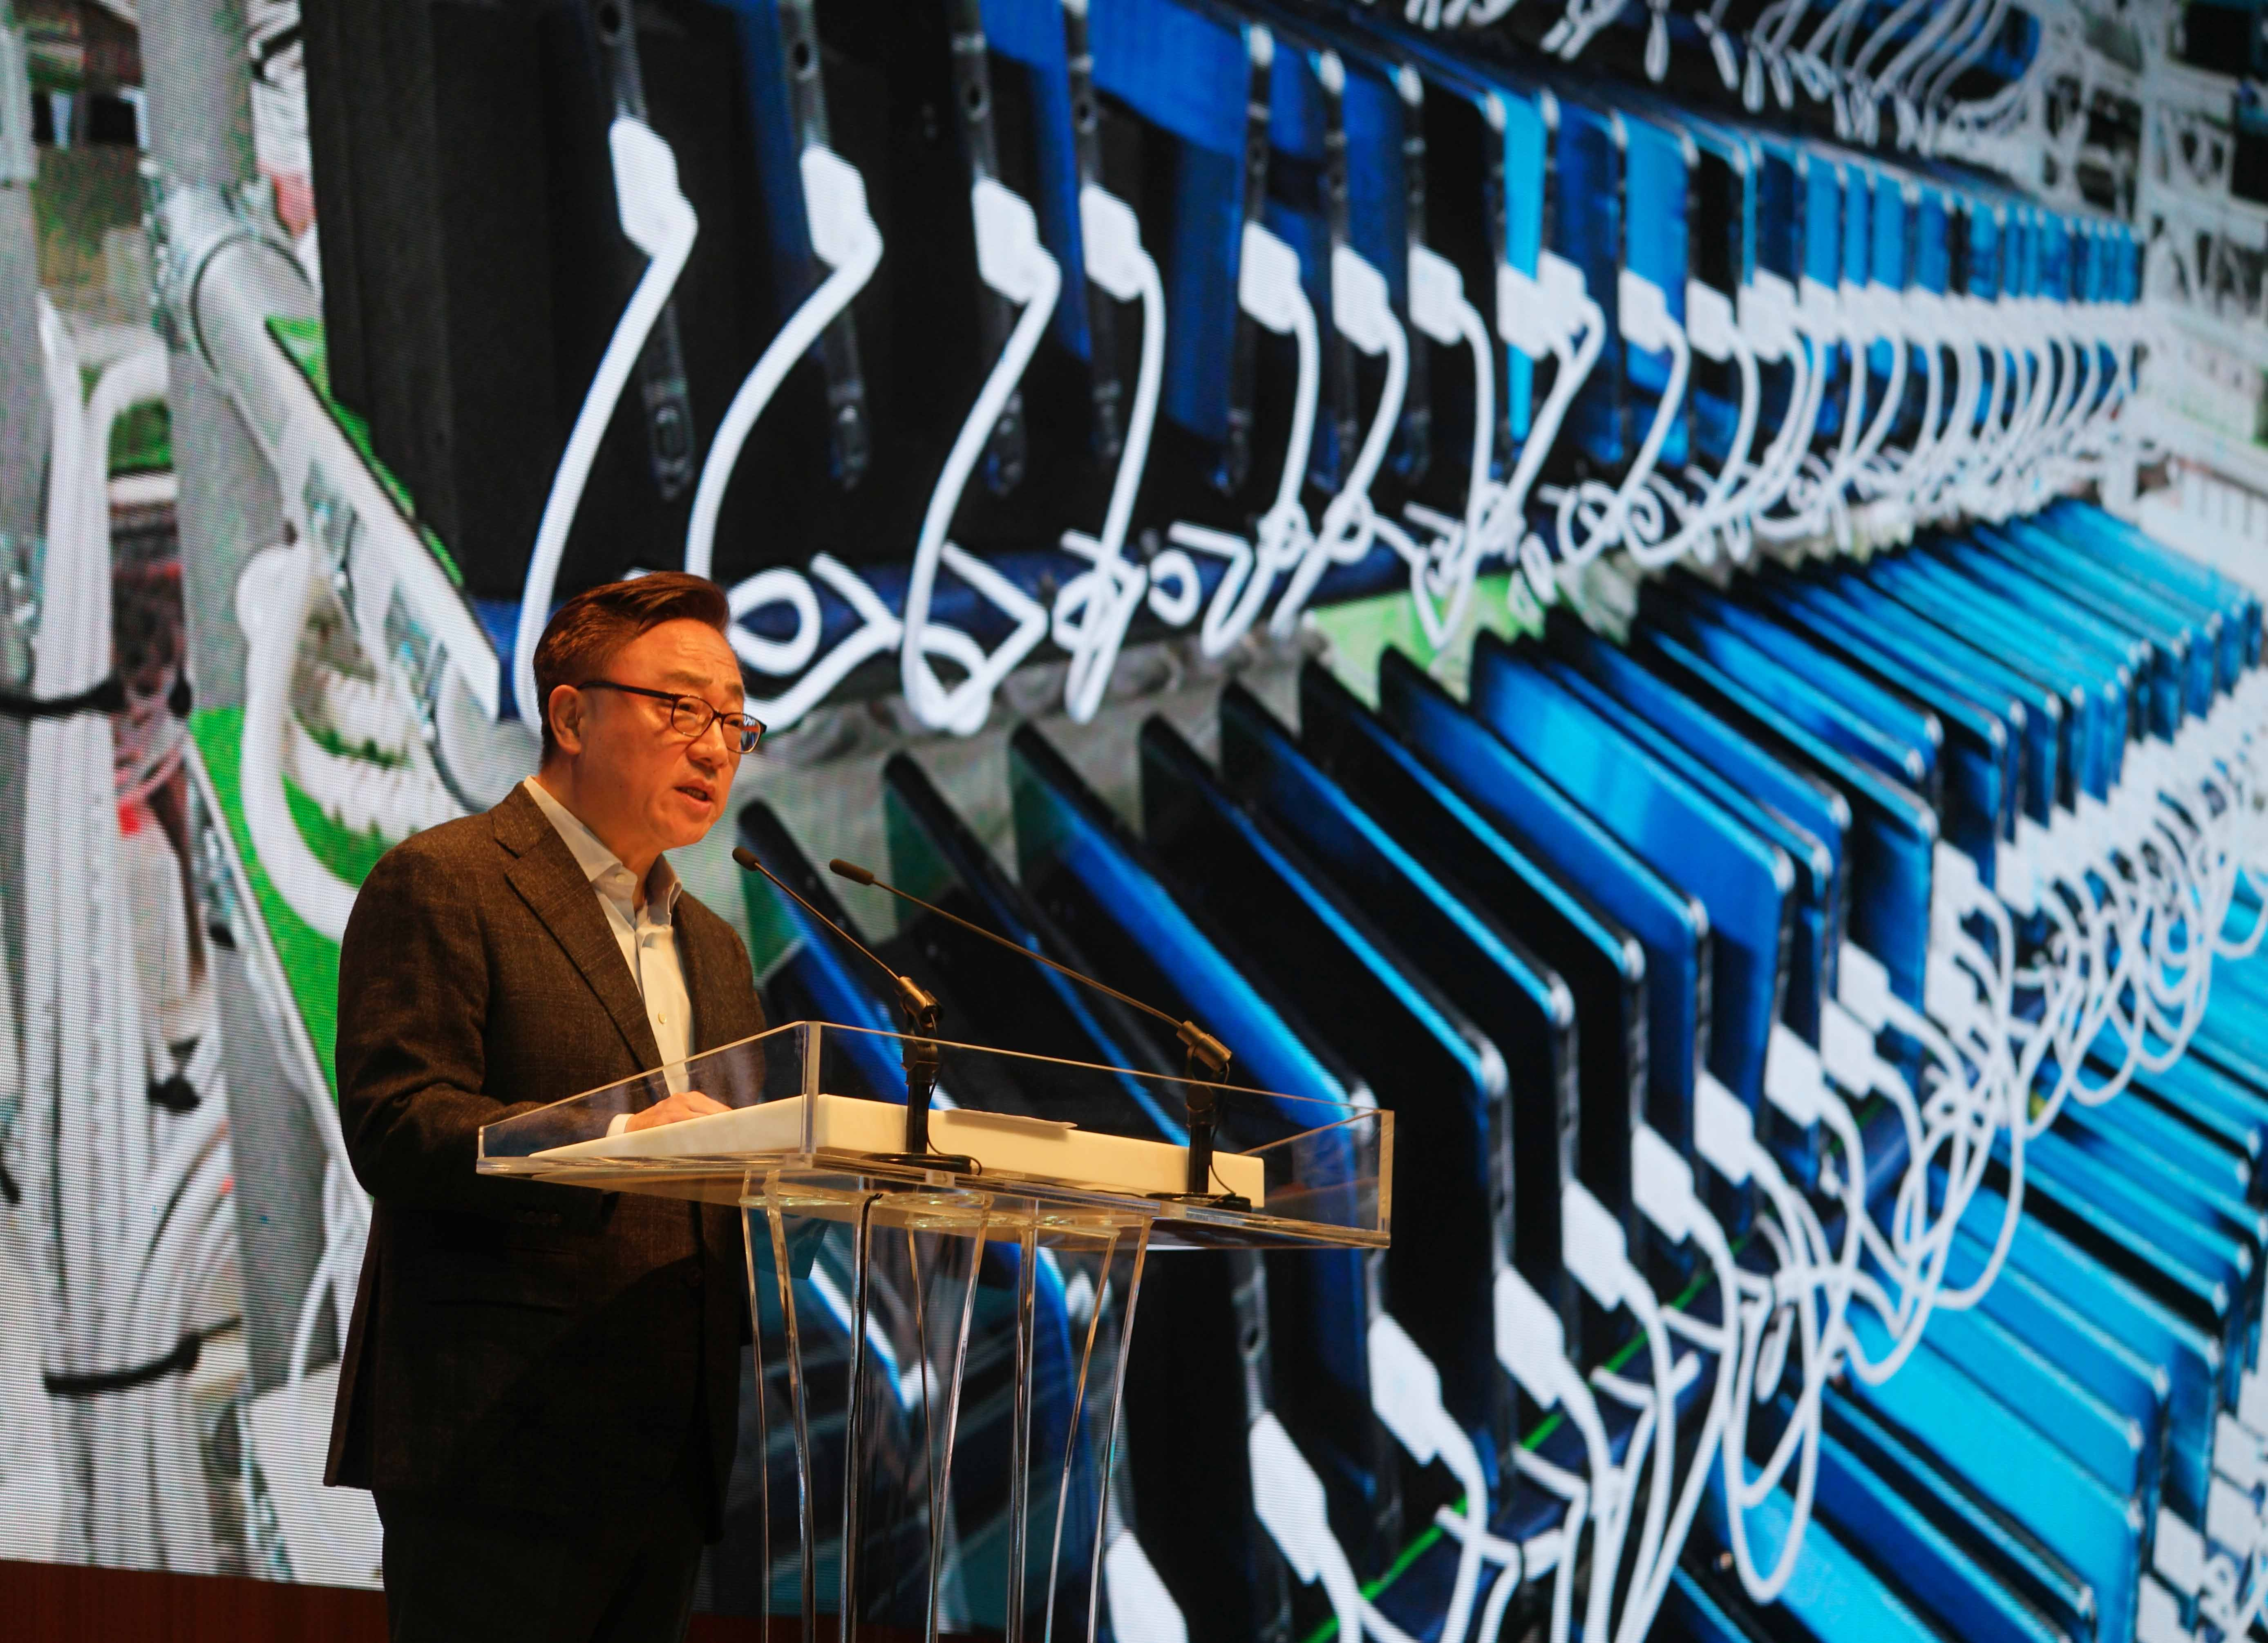 <p>SAMSUNG CSC</p><p>Samsung Galaxy Note 7 press conference</p><p>DJ Koh Samsung President of Mobile Communication Business</p>